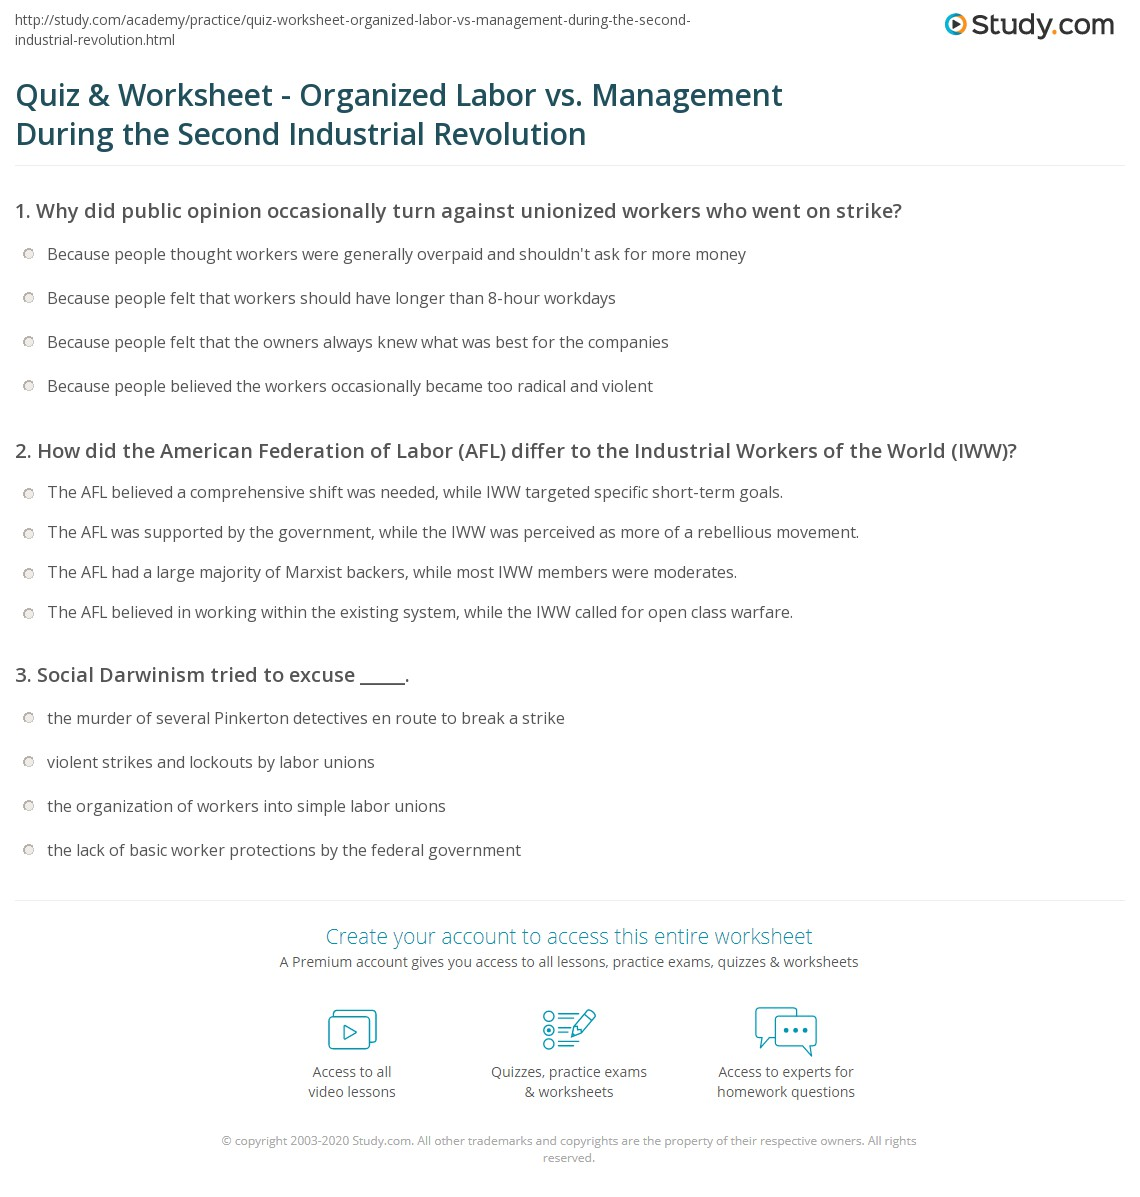 Uncategorized Industrial Revolution Worksheet quiz worksheet organized labor vs management during the second print unions industrial revolution worksheet